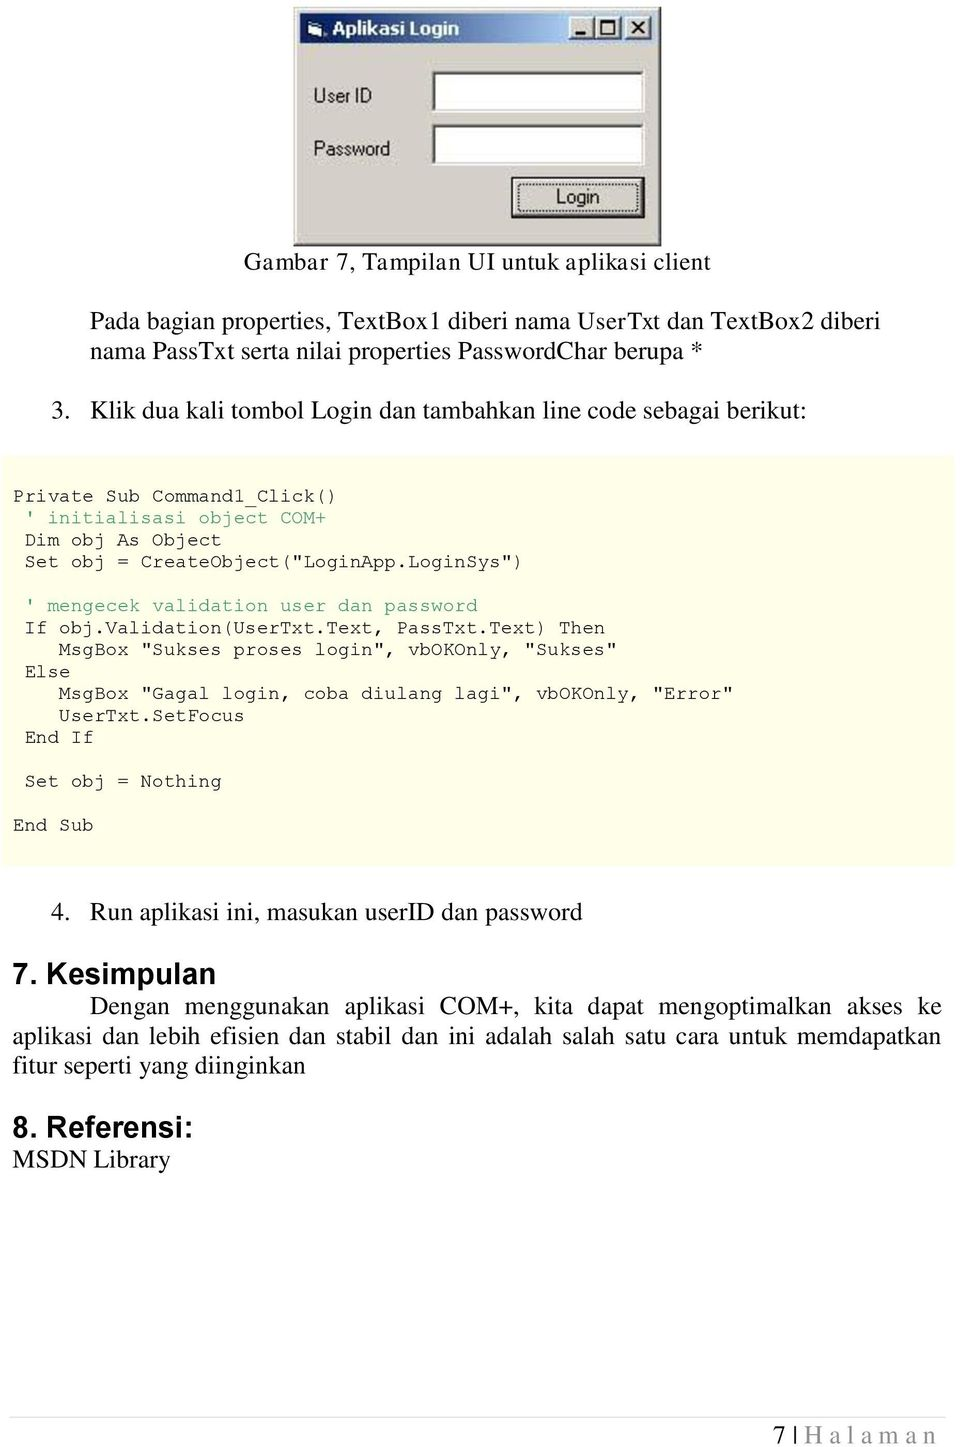 "LoginSys"") ' mengecek validation user dan password If obj.validation(usertxt.text, PassTxt."